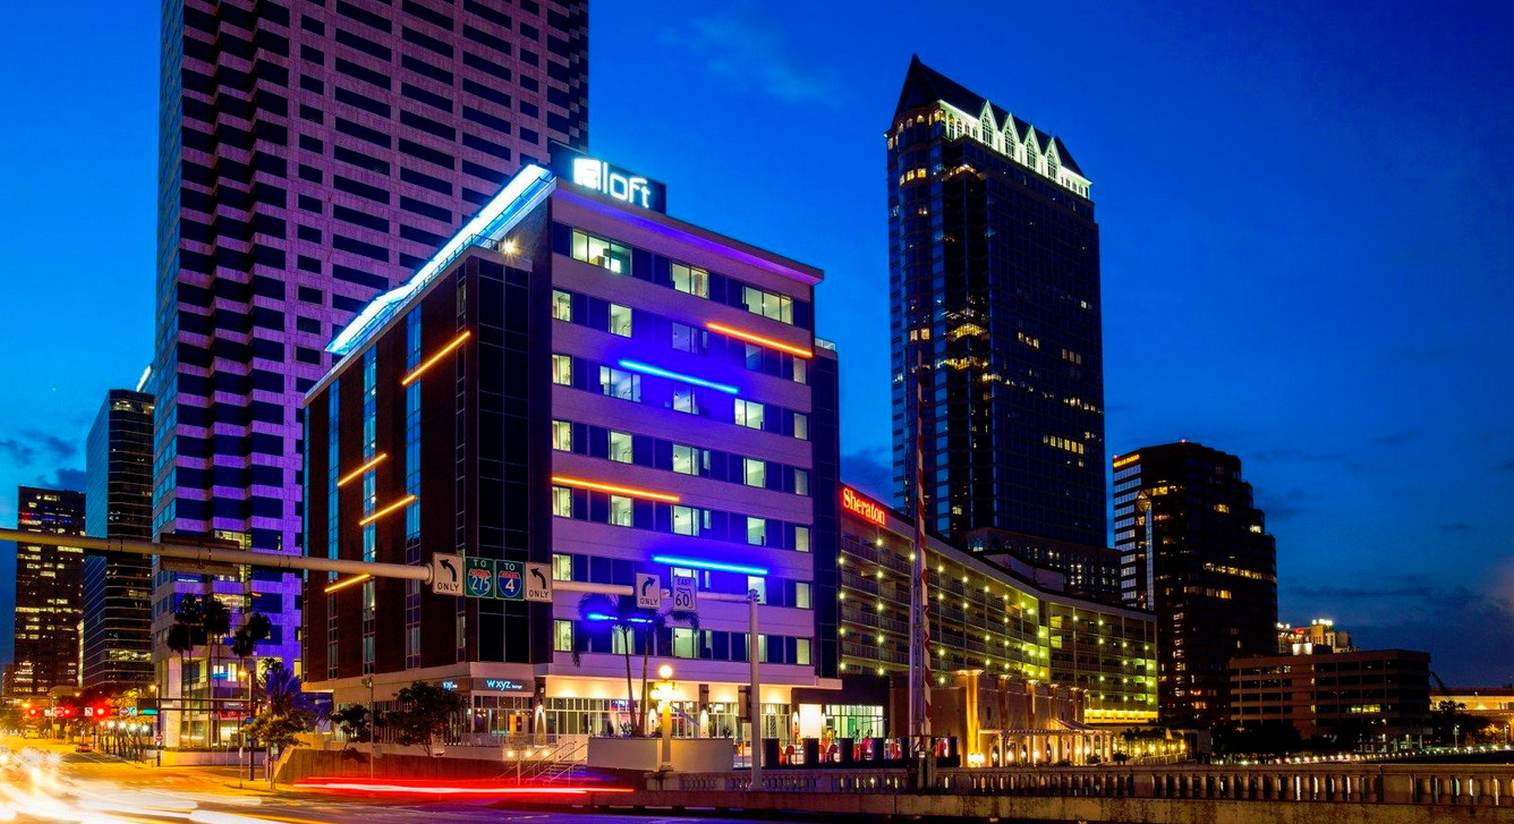 Aloft Tampa Downtown Hotel